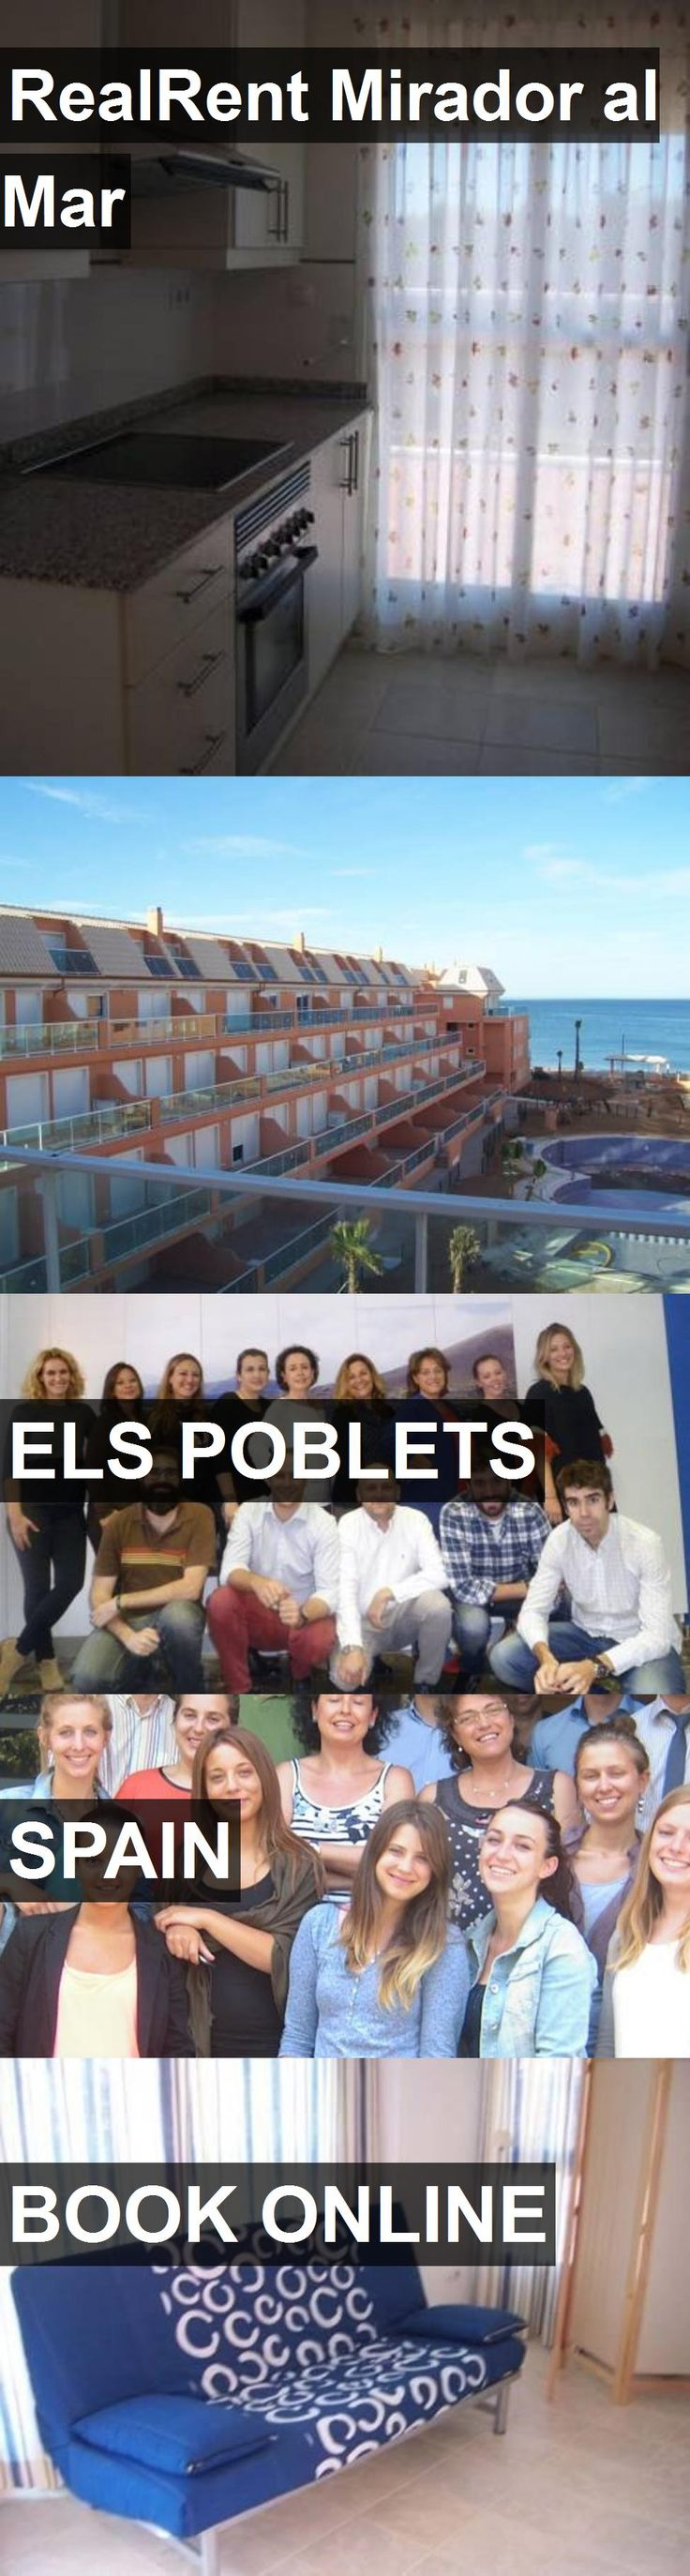 Hotel RealRent Mirador al Mar in Els Poblets, Spain. For more information, photos, reviews and best prices please follow the link. #Spain #ElsPoblets #travel #vacation #hotel